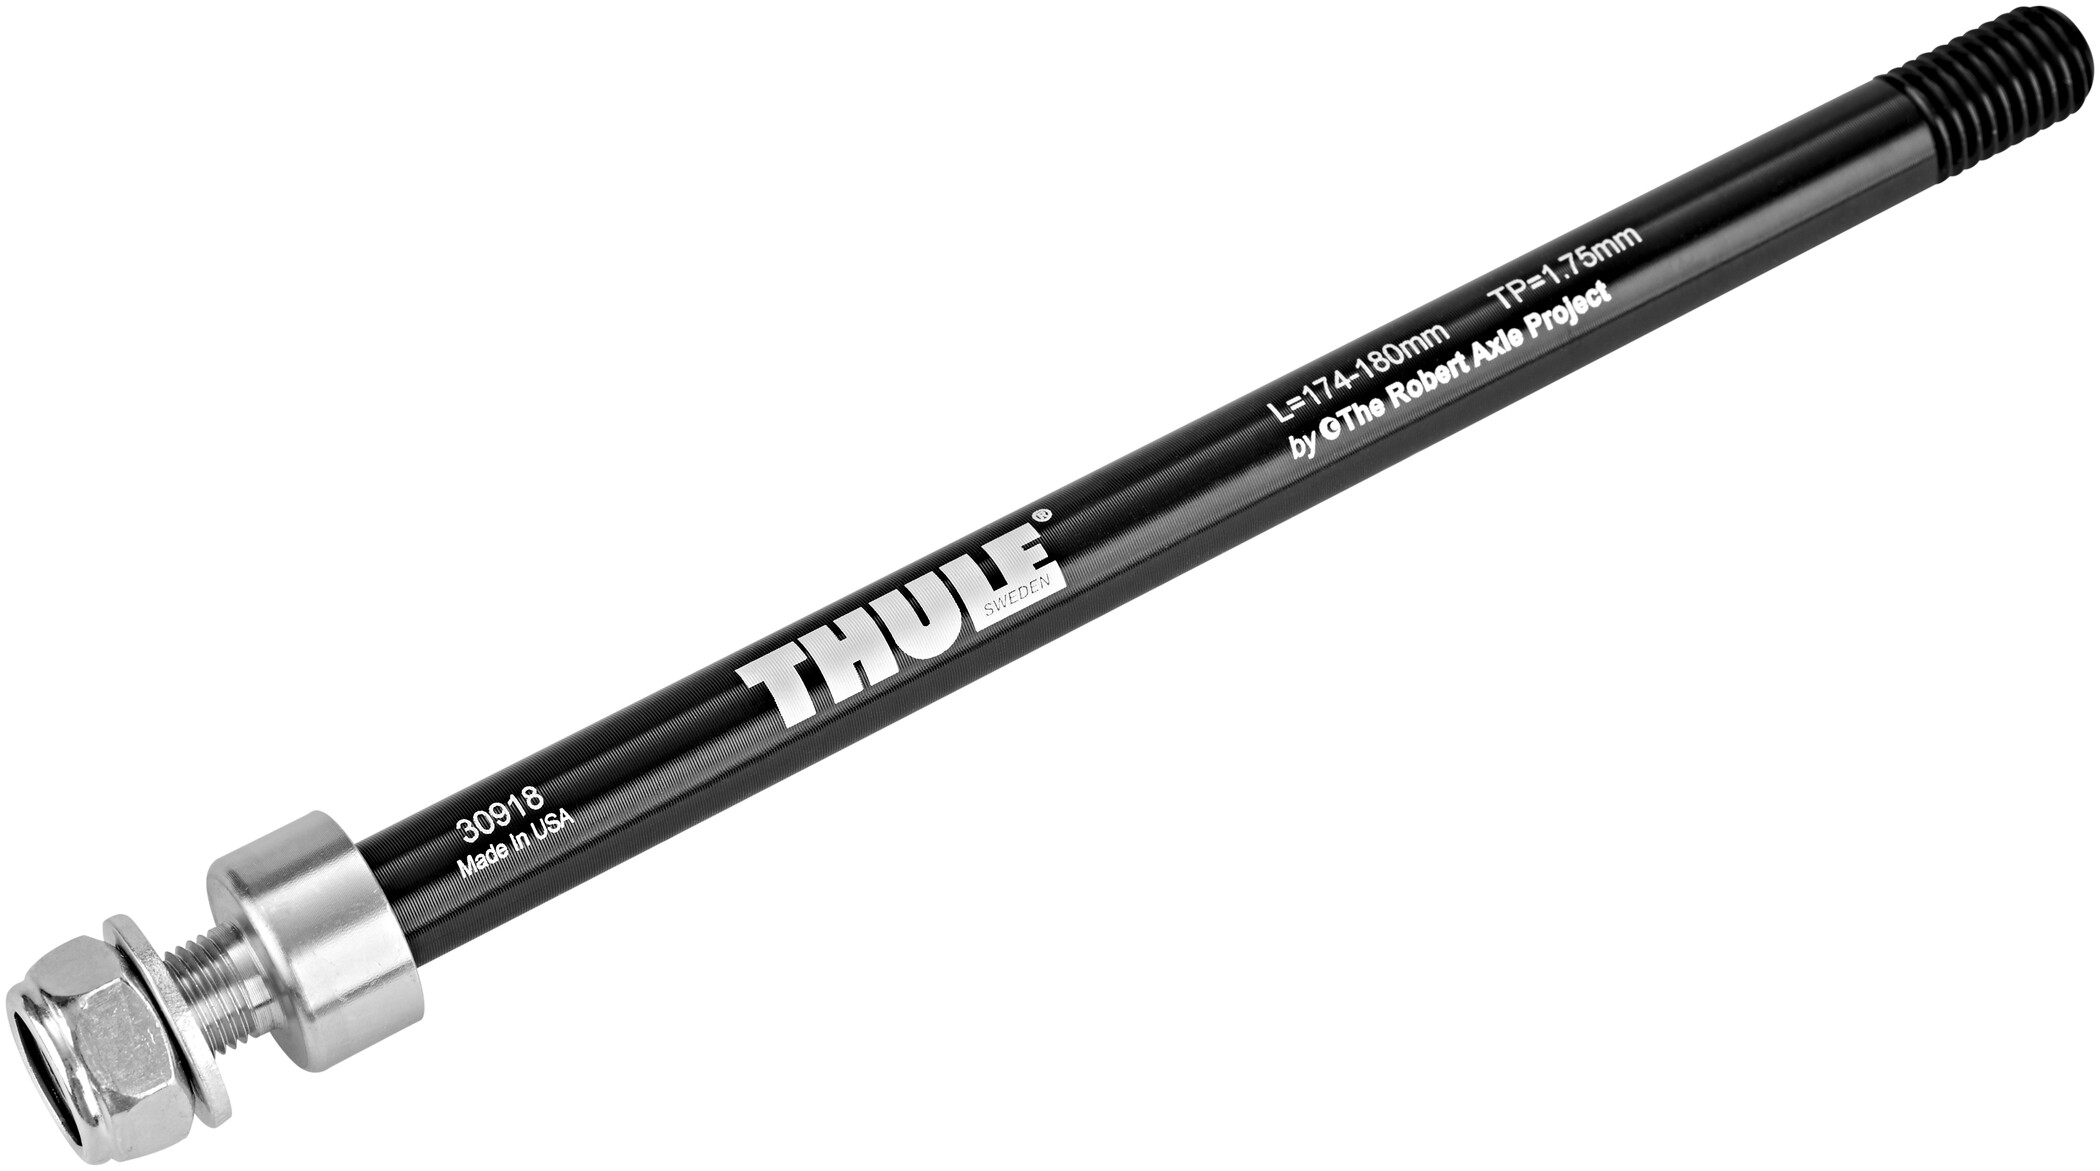 Thule Thru Axle Adapter til Maxle 174/180mm (2019)   Quick release